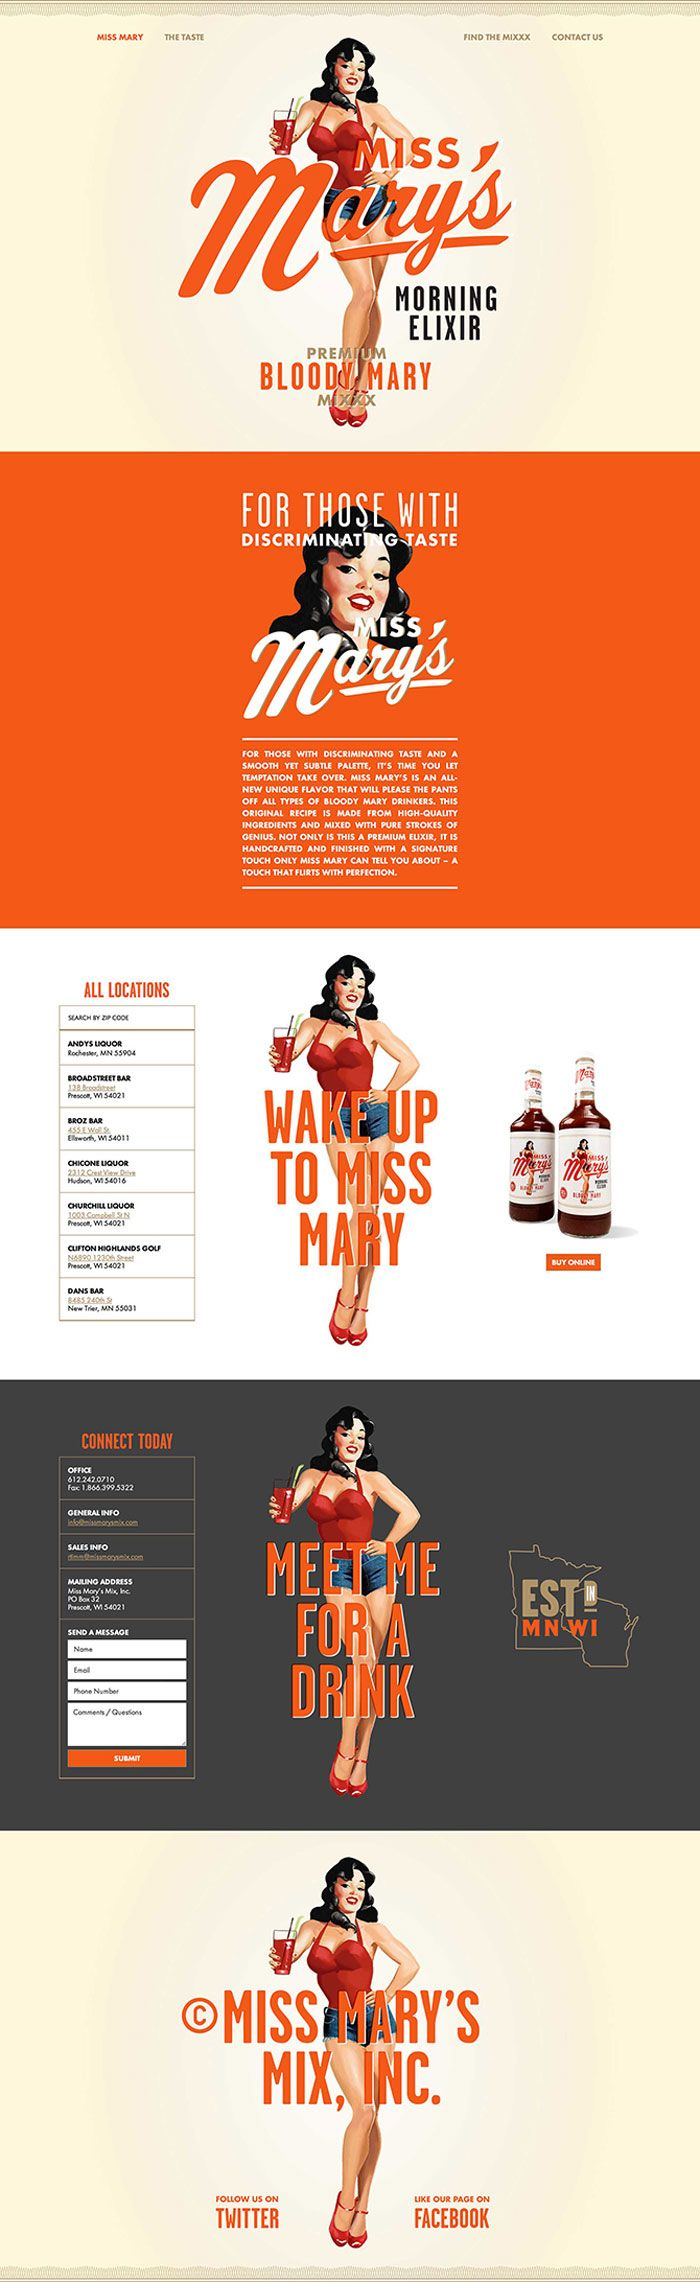 Client: Miss Mary's Mix Agency: Brandon Van Liere Designer: Brandon Van Liere Illustrator: Joel Herrera Code: Cory Etzkorn Bottle Photography: Dave Marrkley; Periscope